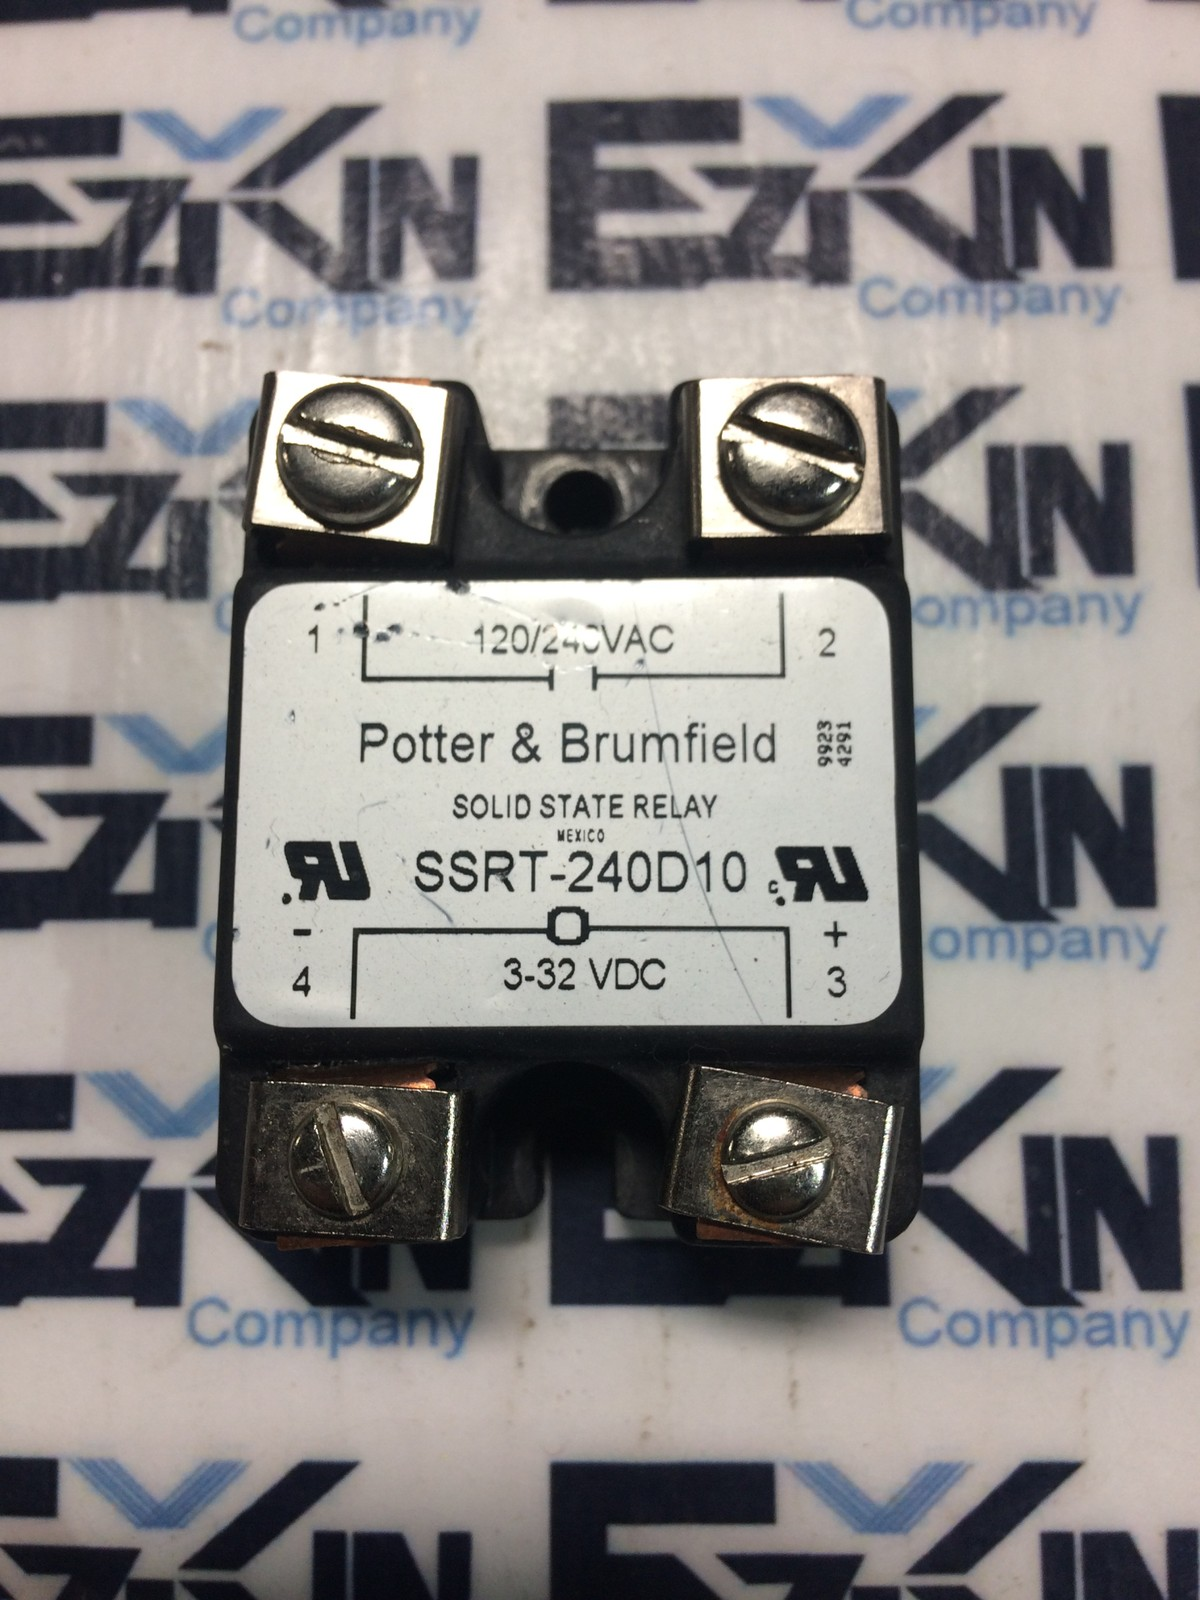 Potter & Brumfield SSRT-240D10 Solid State Relay 3-32 VDC